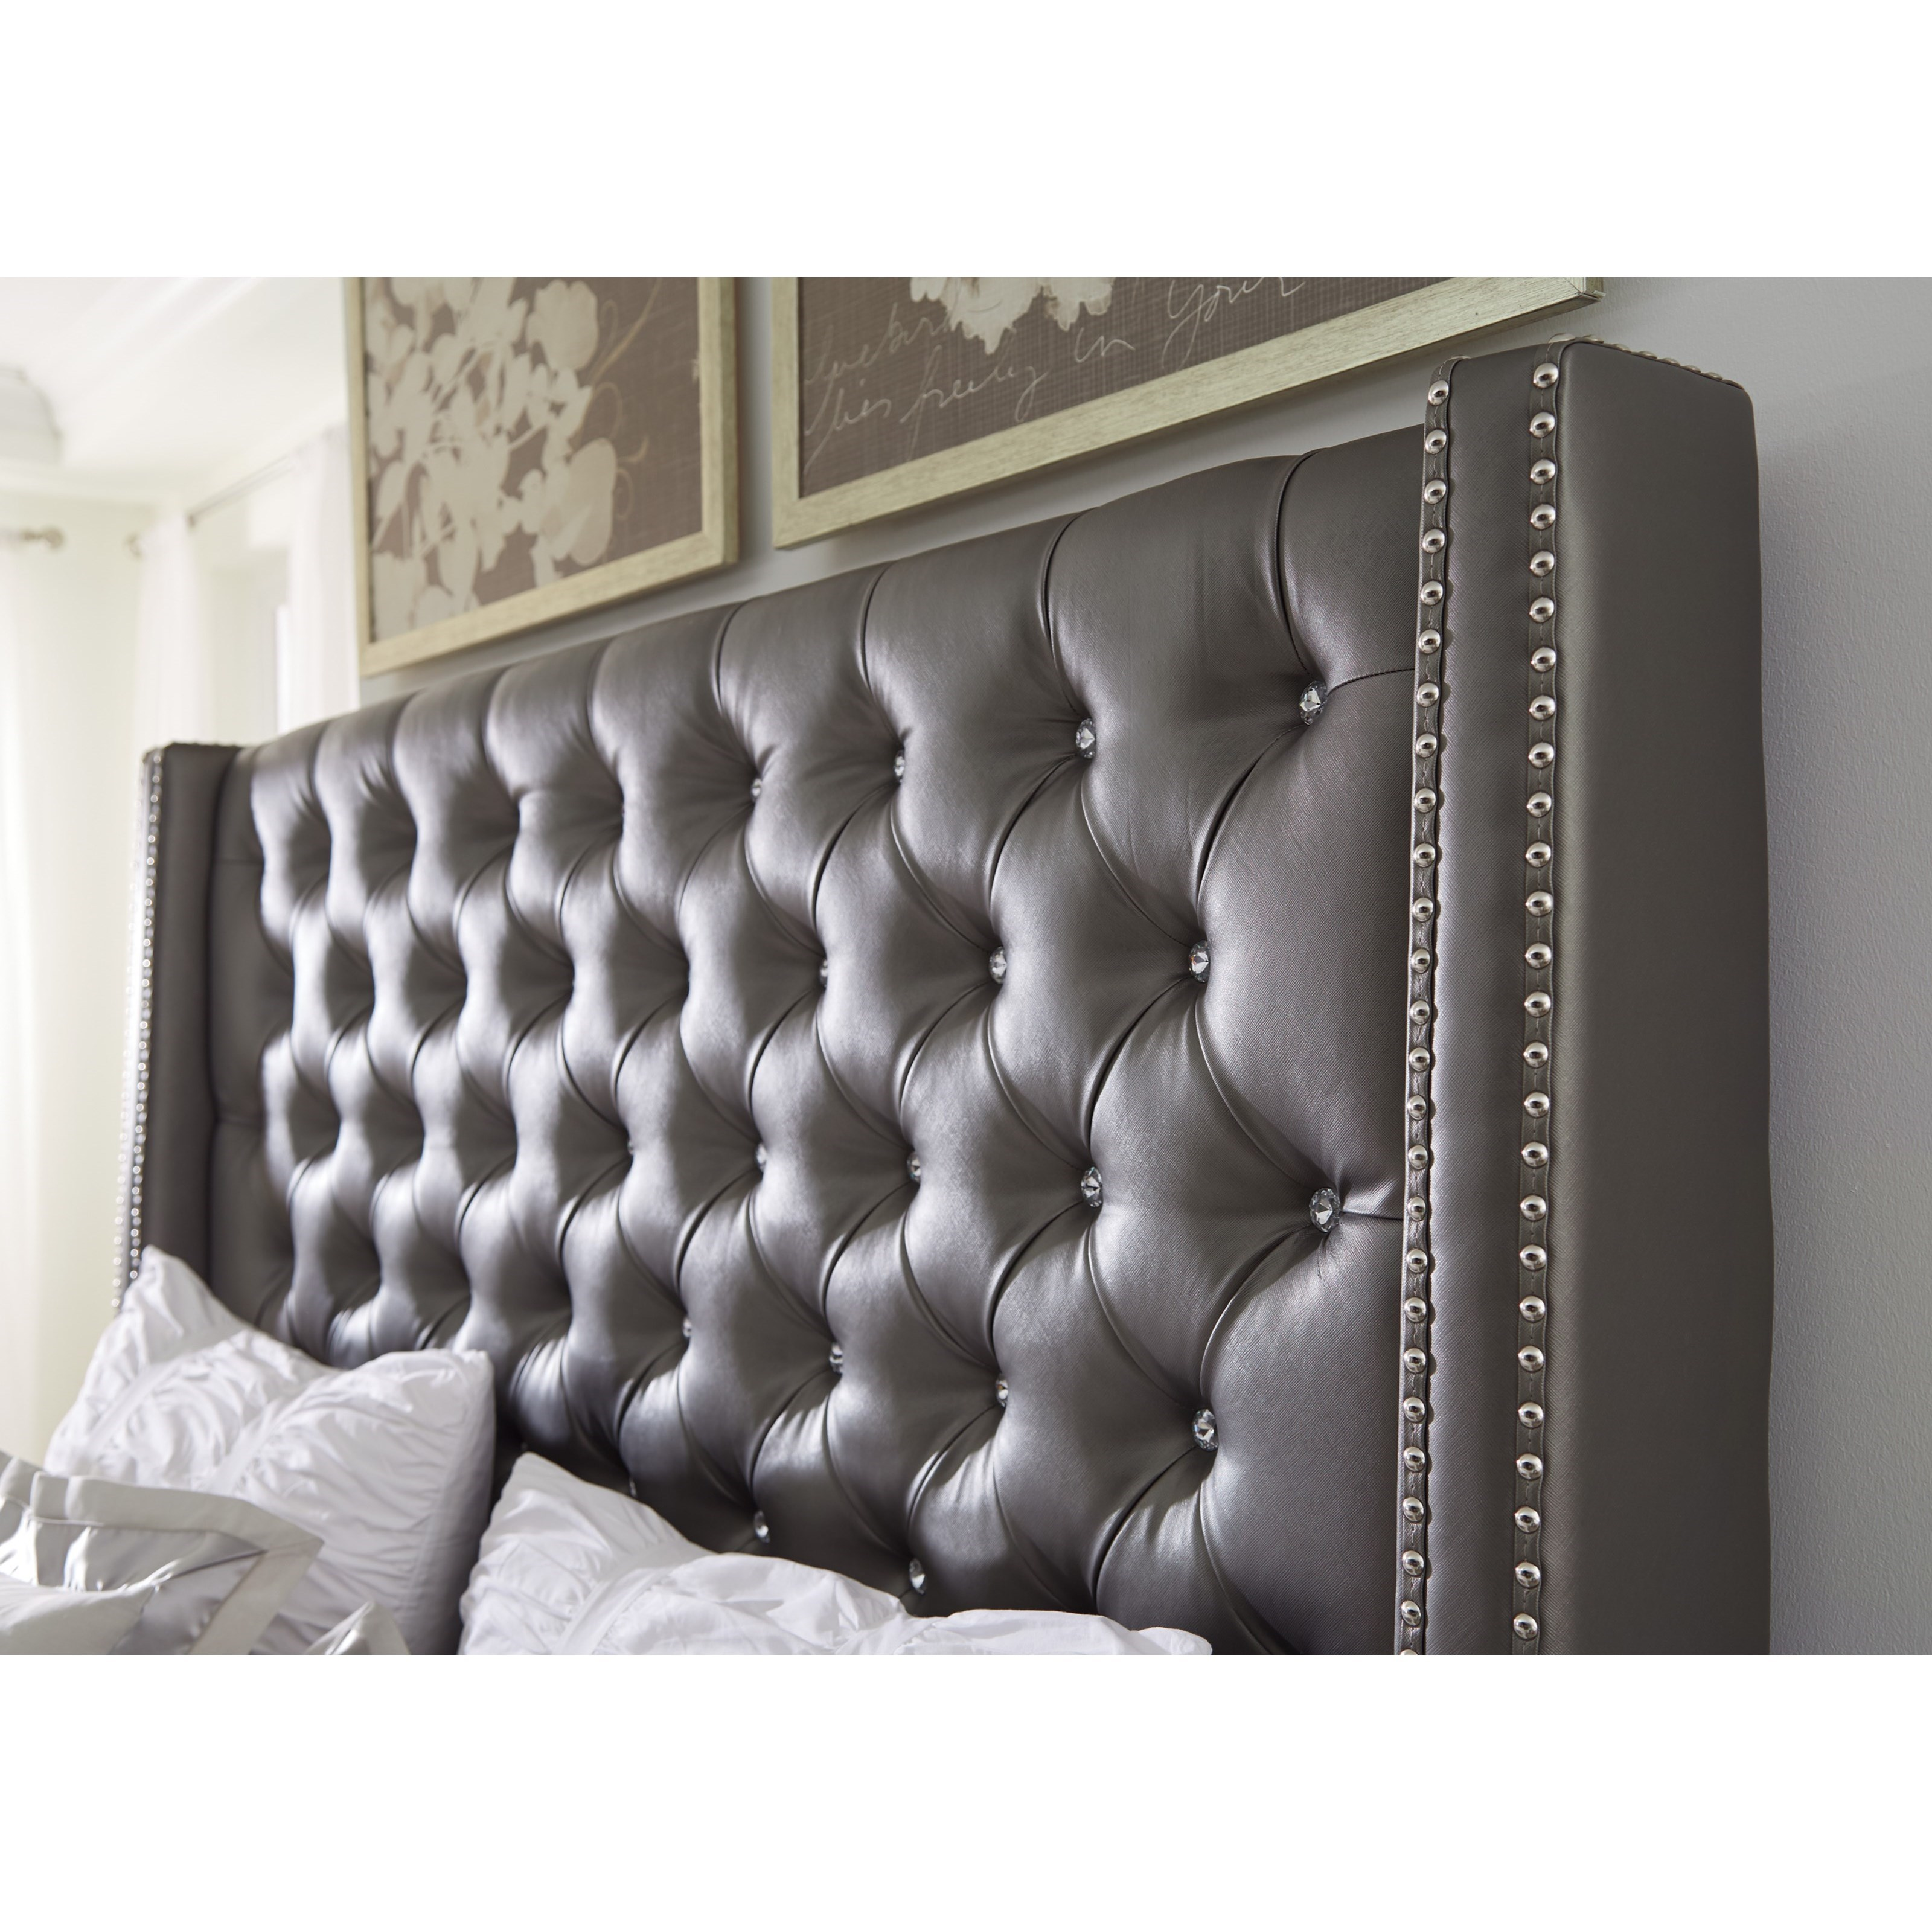 ideas plush beds wood frame picture tall tufted profile metal trend bedroom size sleigh without decoration and leather tan bed white head queen headboard full video home of cloth fabulous buy platform with on pattern frames padded unusual king upholstered decorative small low